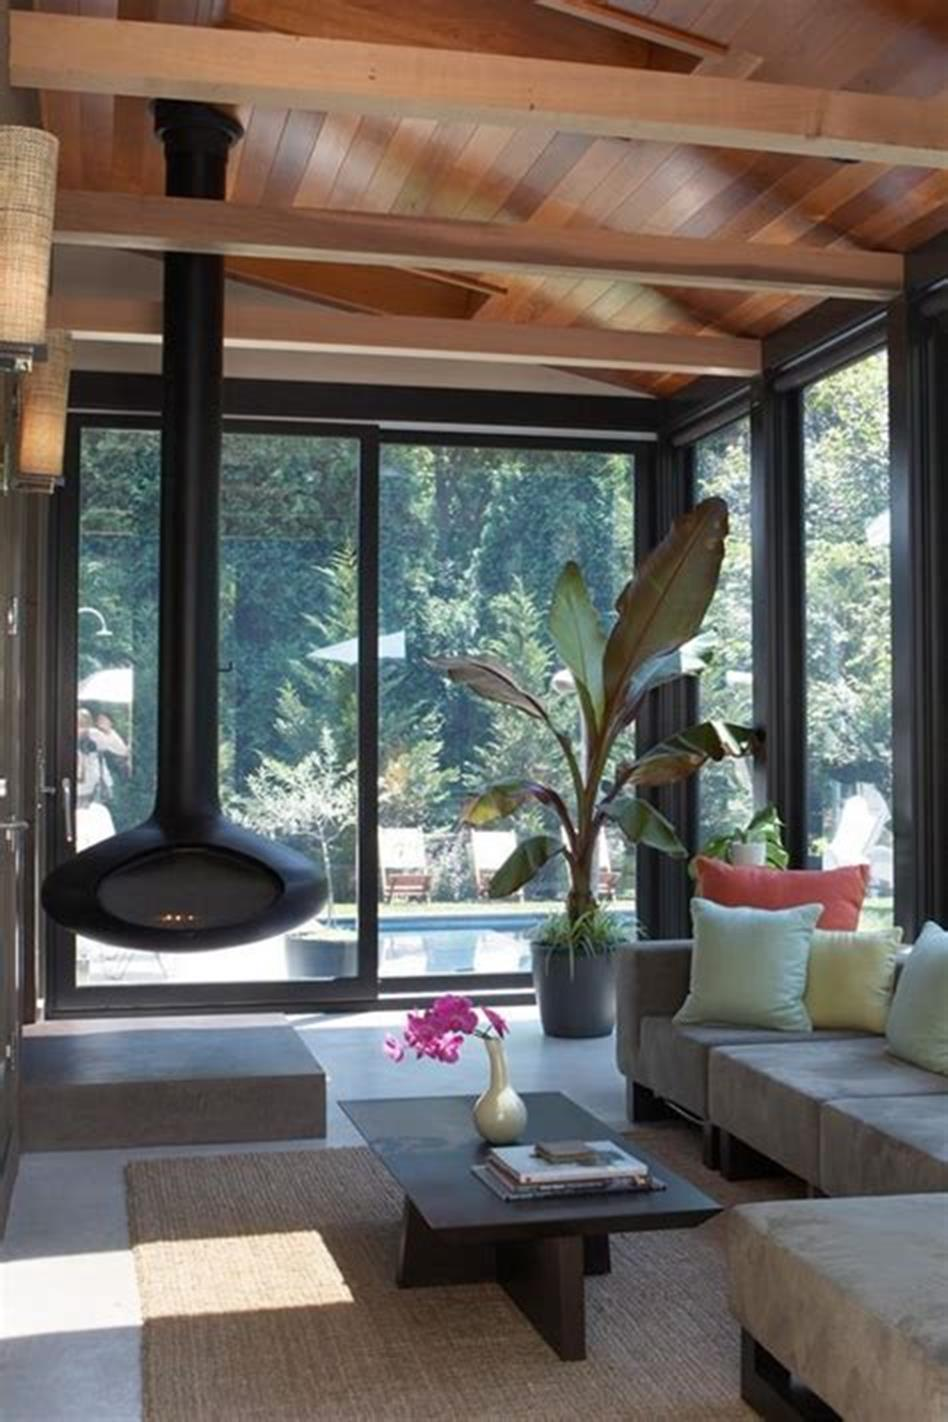 50 Most Popular Affordable Sunroom Design Ideas on a Budget 8